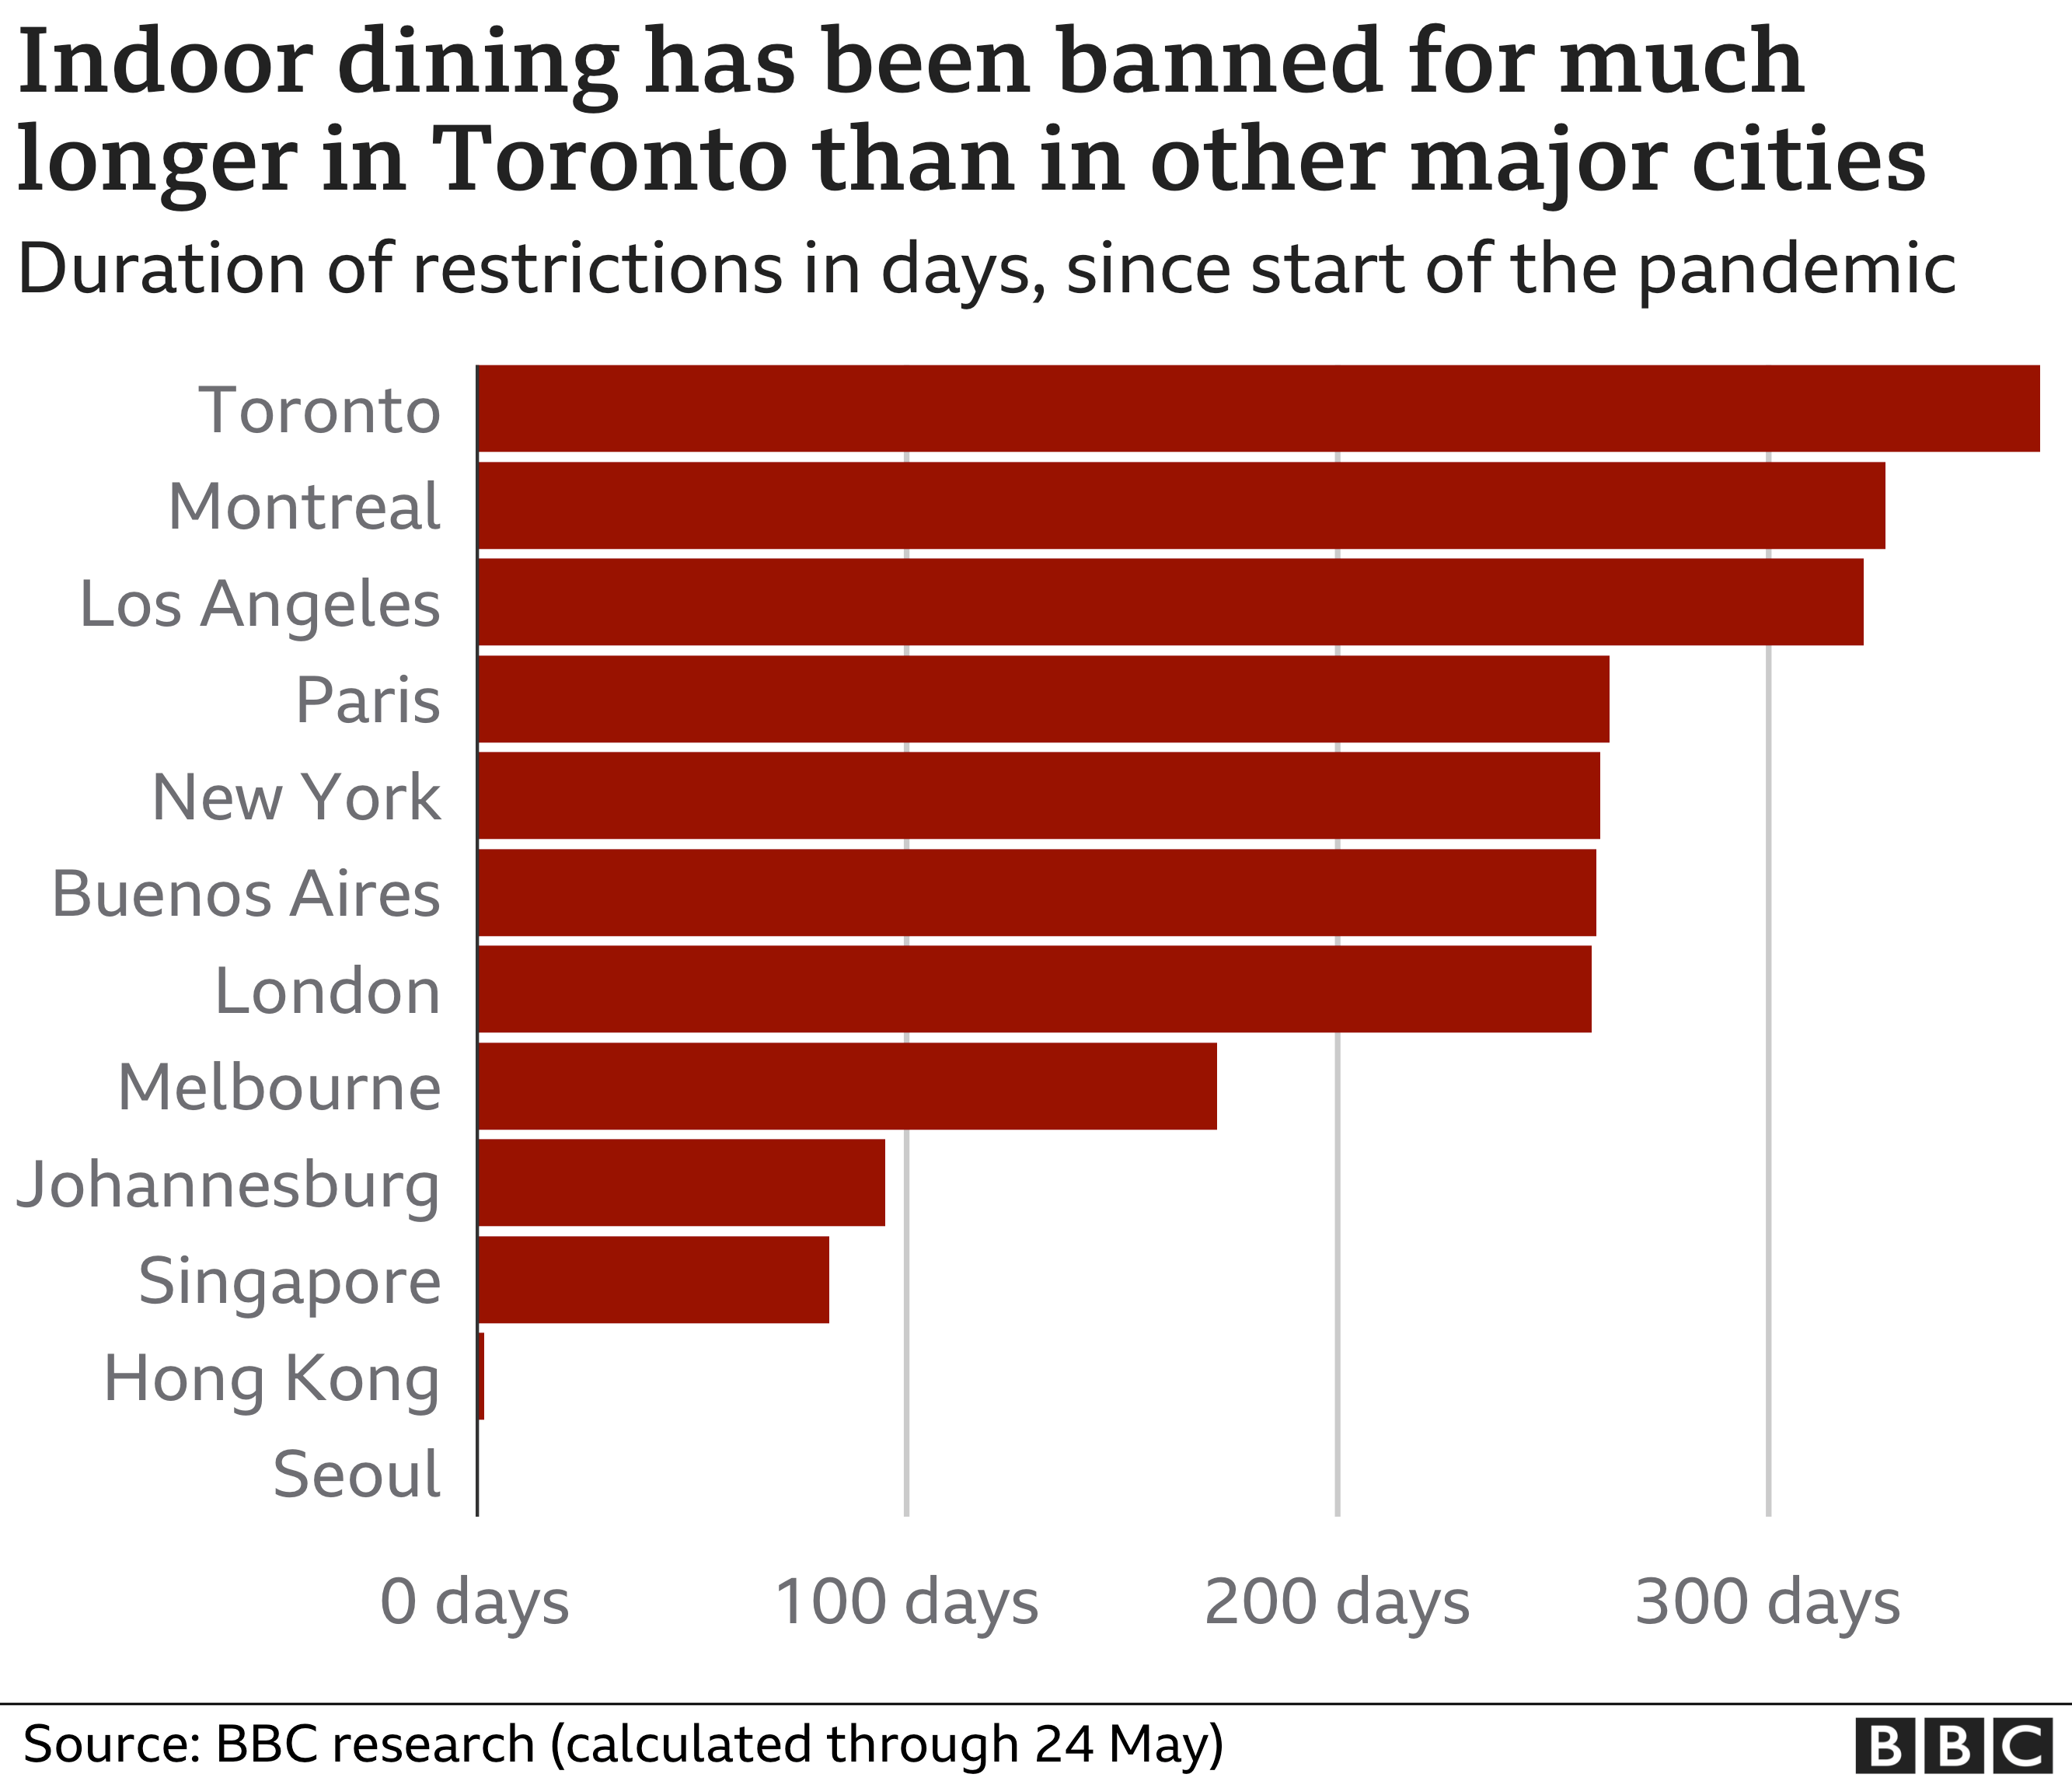 Chart showing how the length of the ban on indoor dining in Toronto compares to other major cities